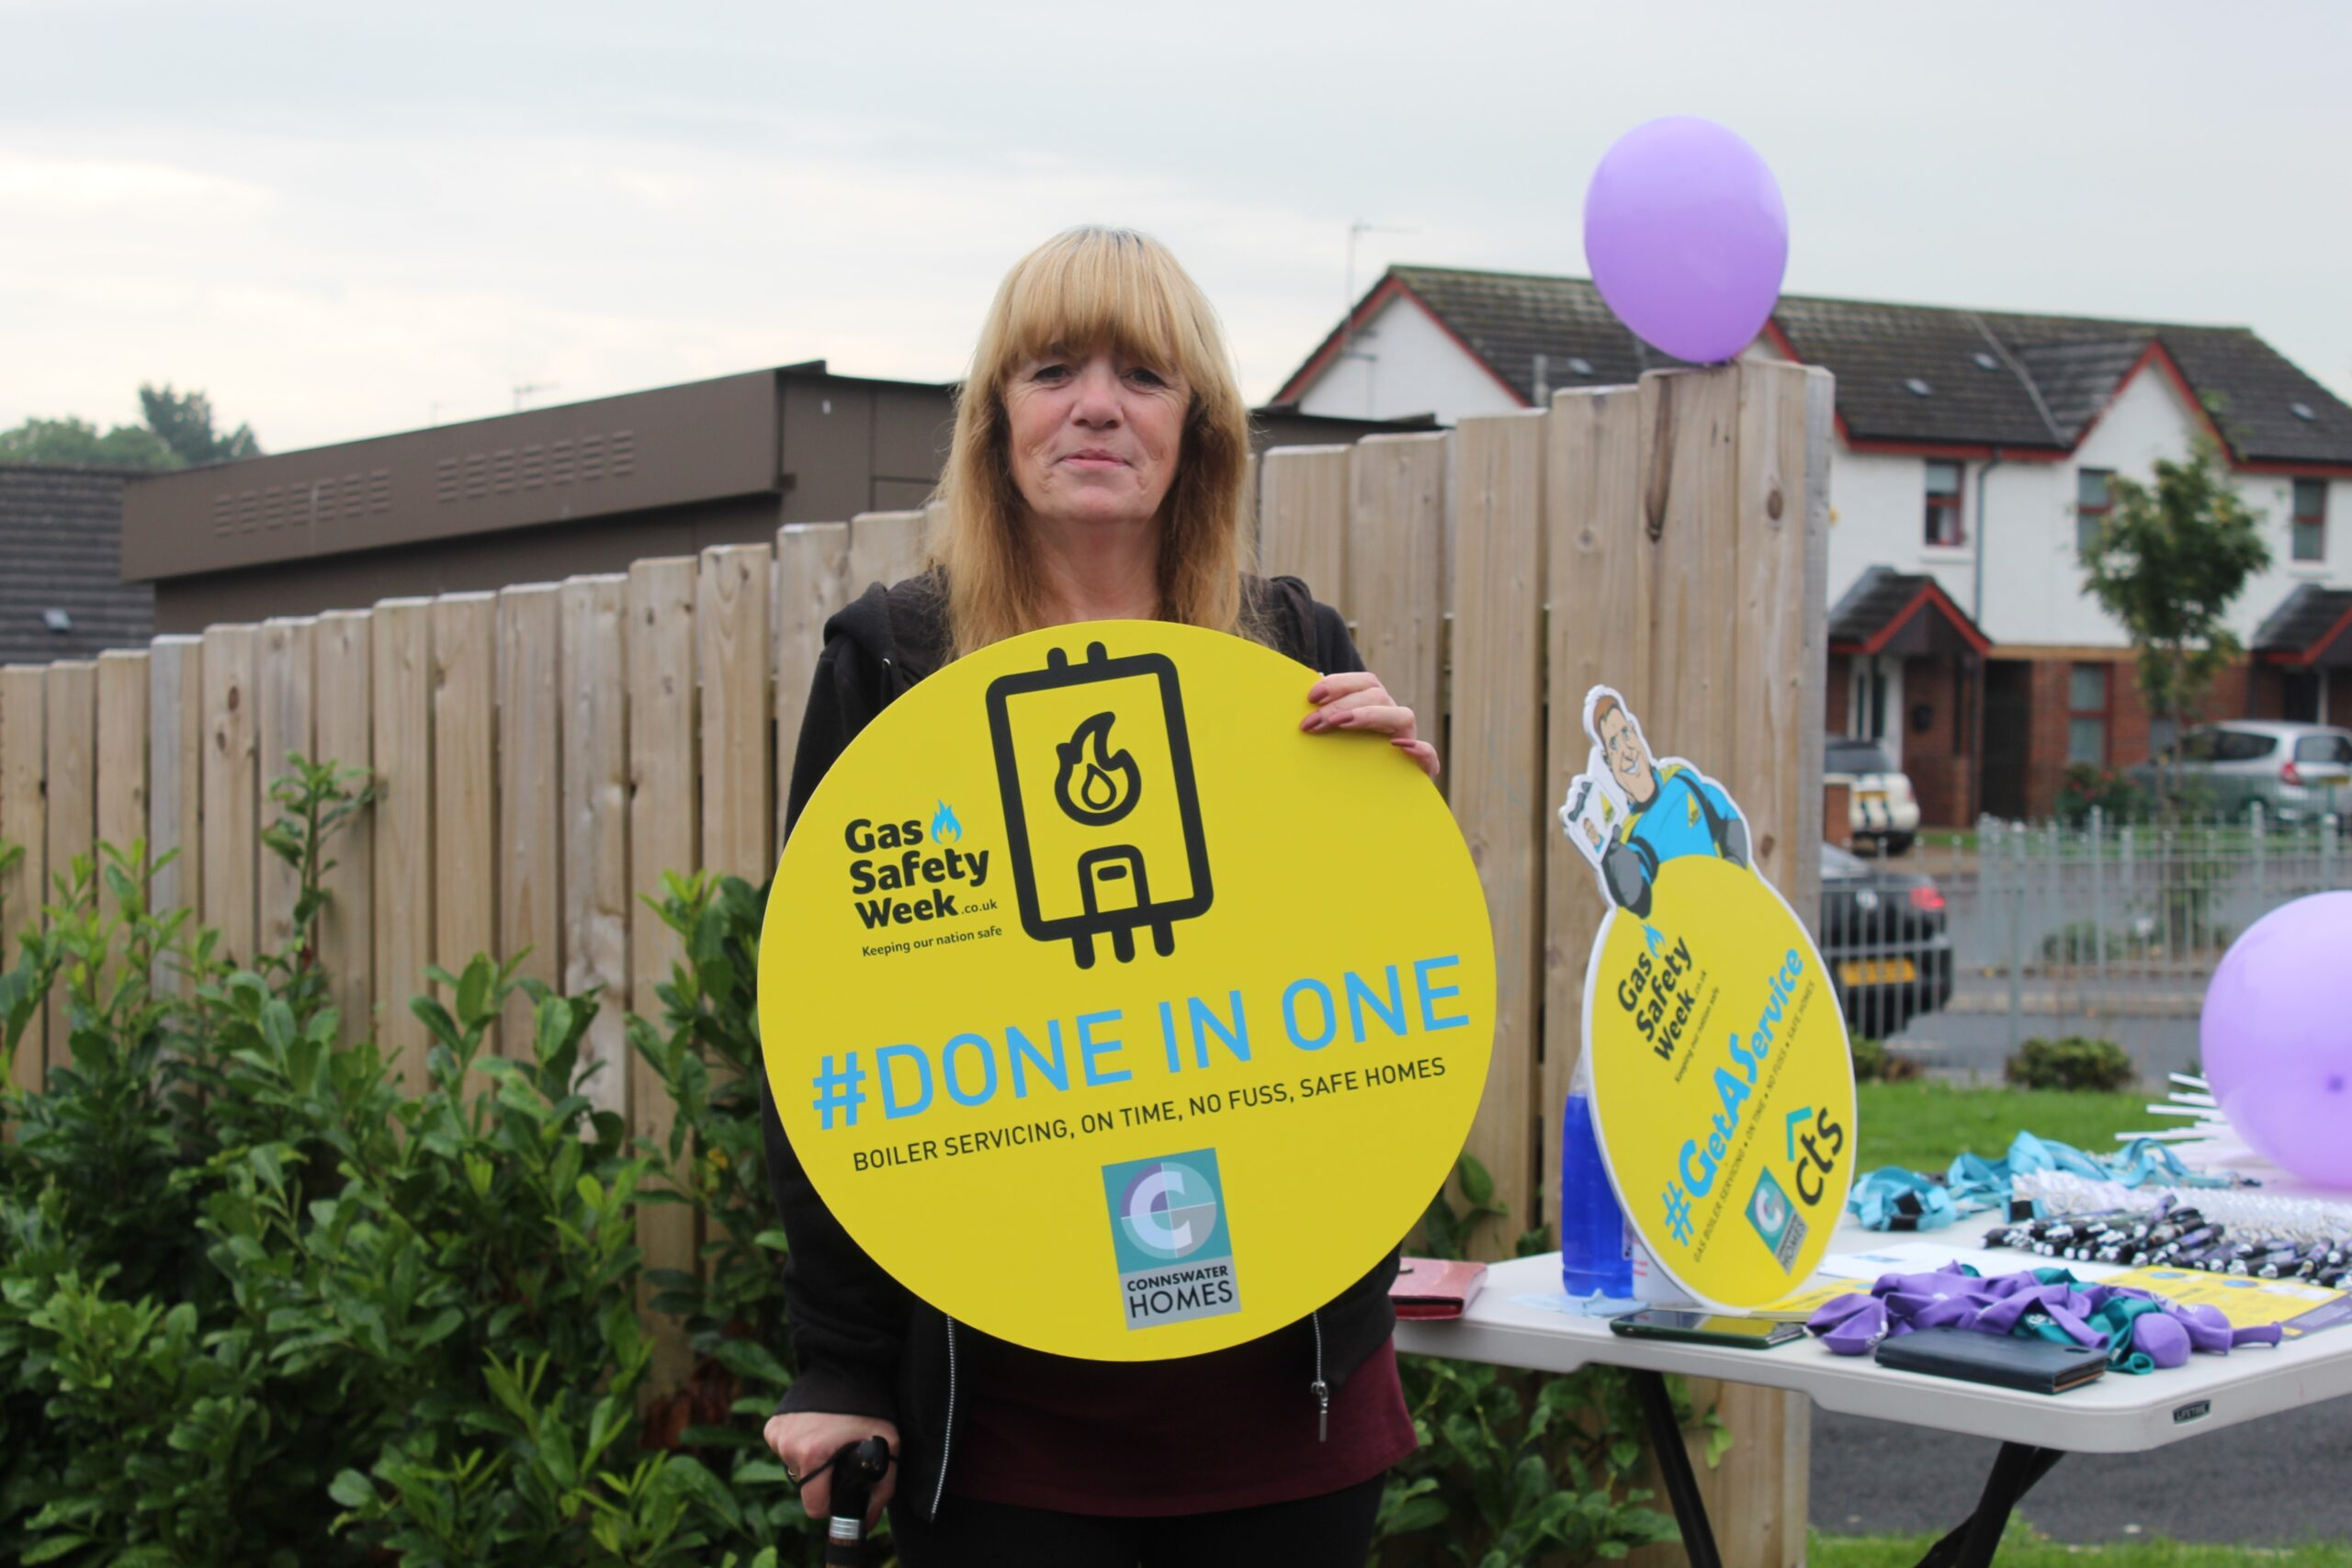 CTS SUPPORT GAS SAFETY WEEK BY TEAMING UP WITH CLIENTS